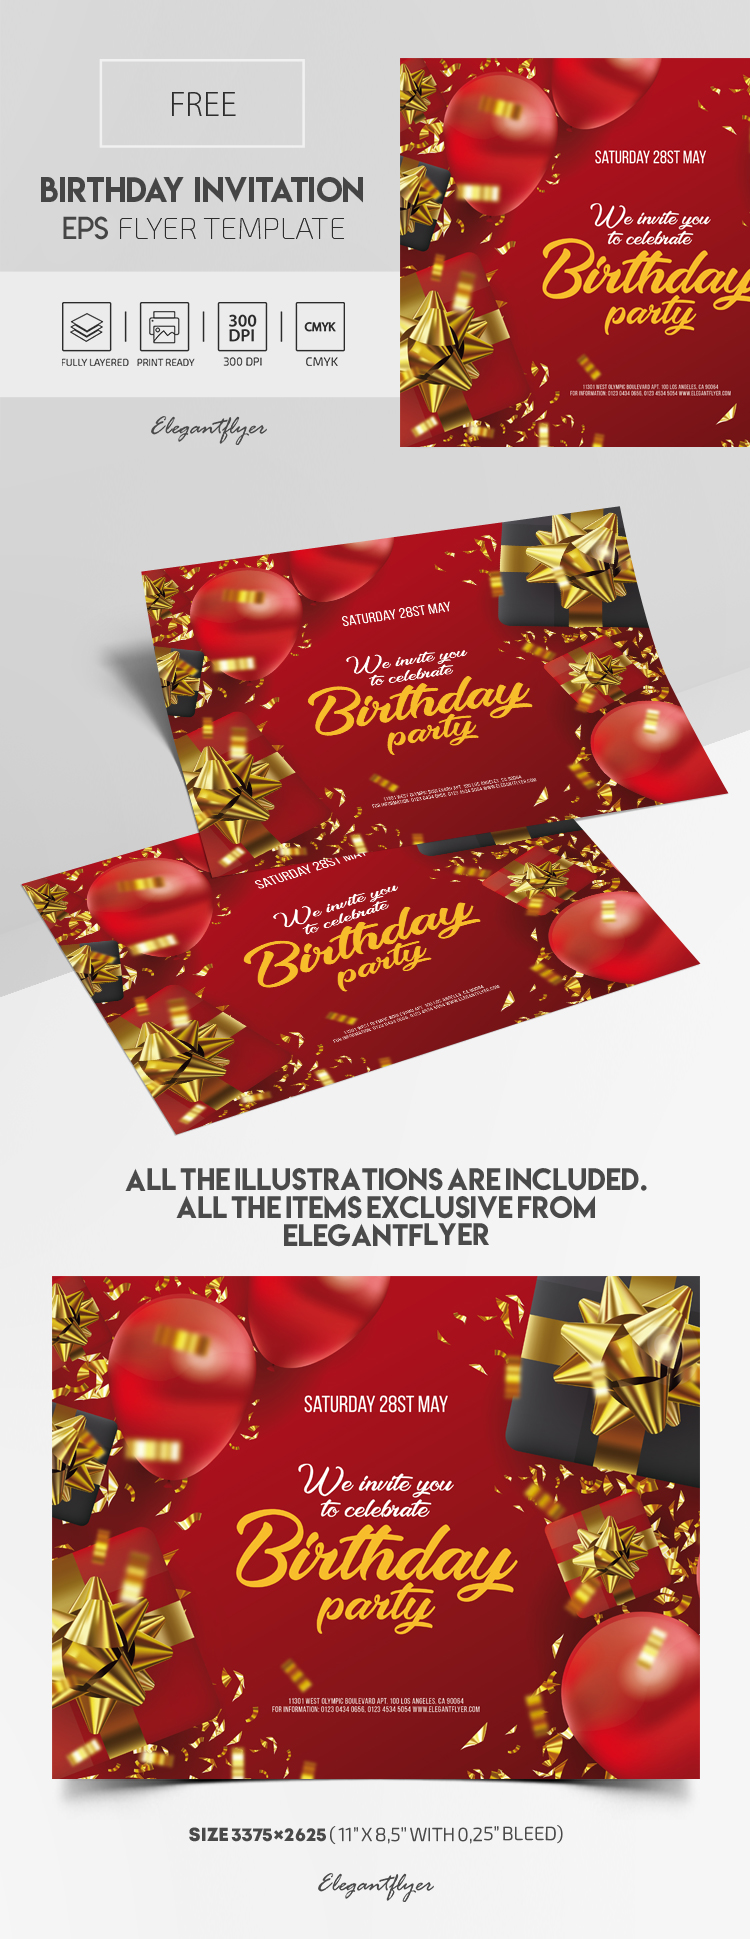 Free Birthday Invitation Vector EPS Template